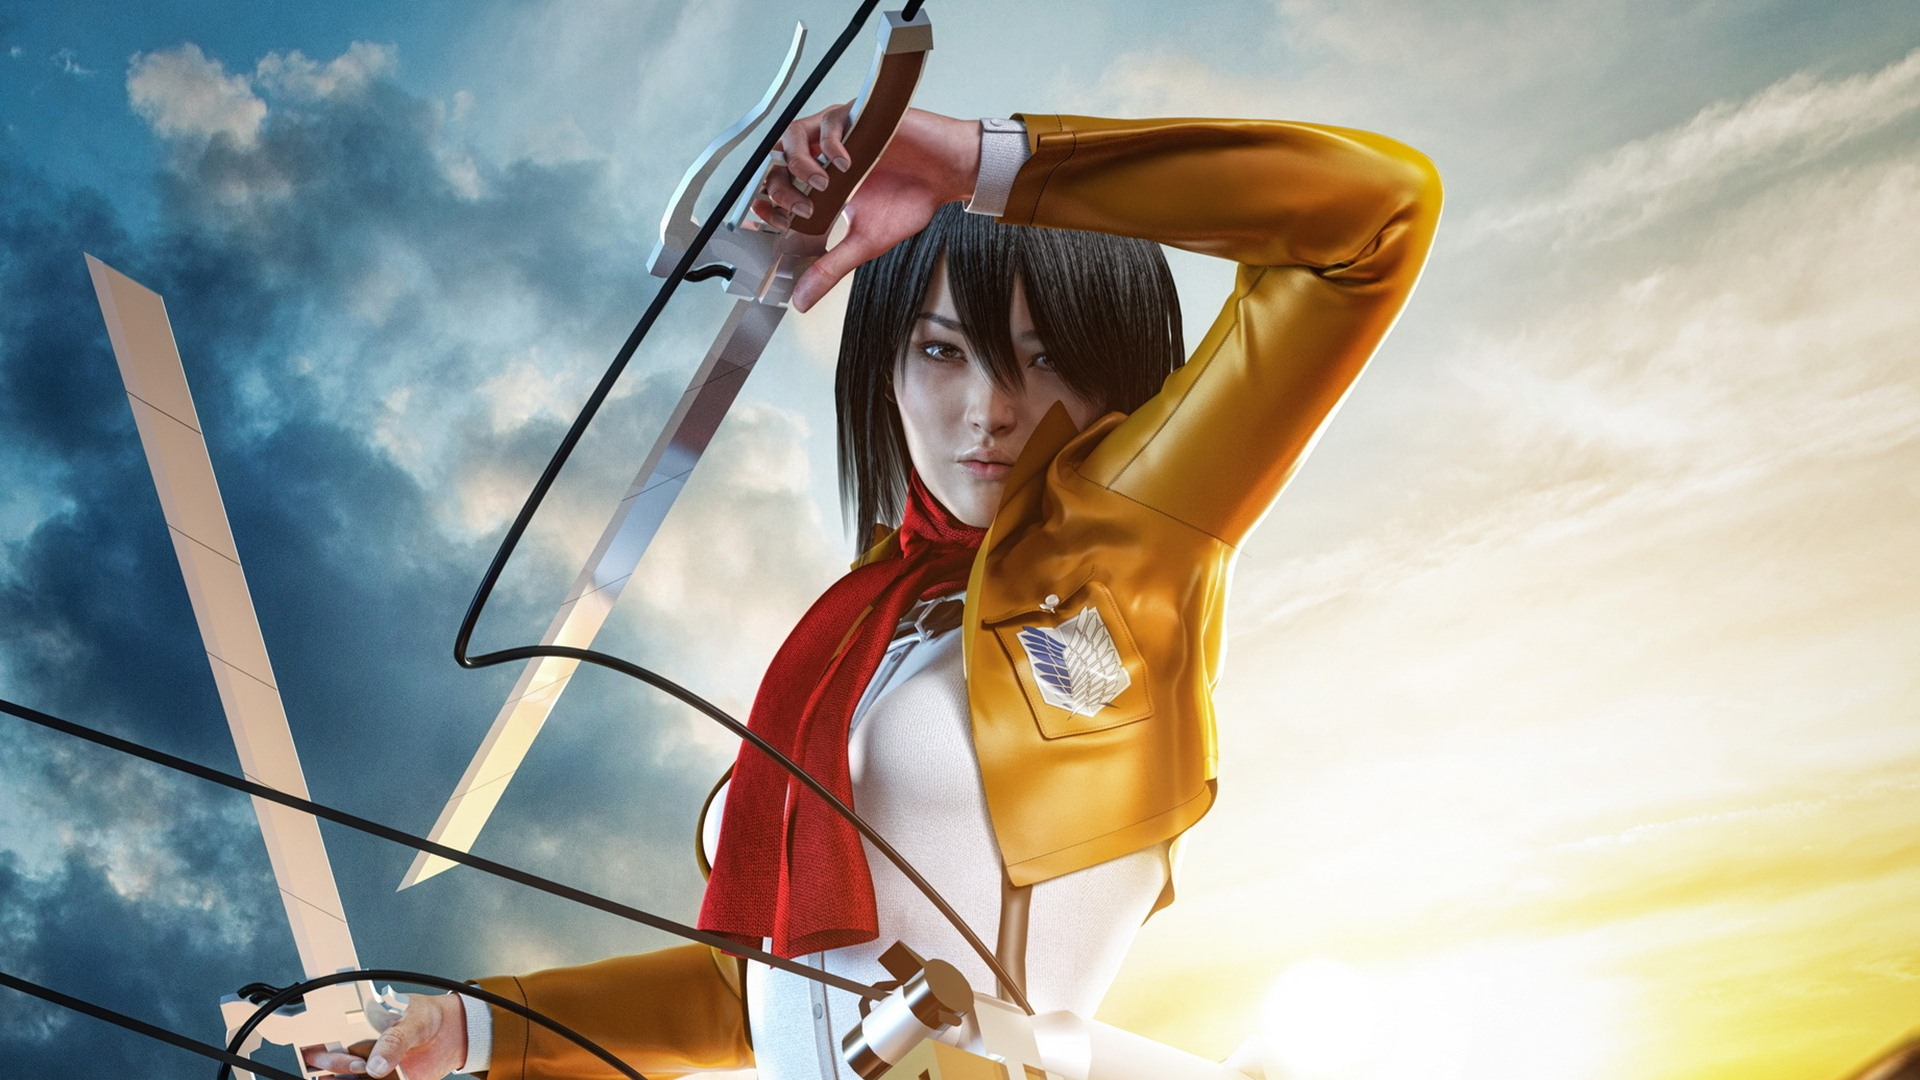 Mikasa Ackerman Wallpaper Hd 1920x1080 Wallpaper Teahub Io